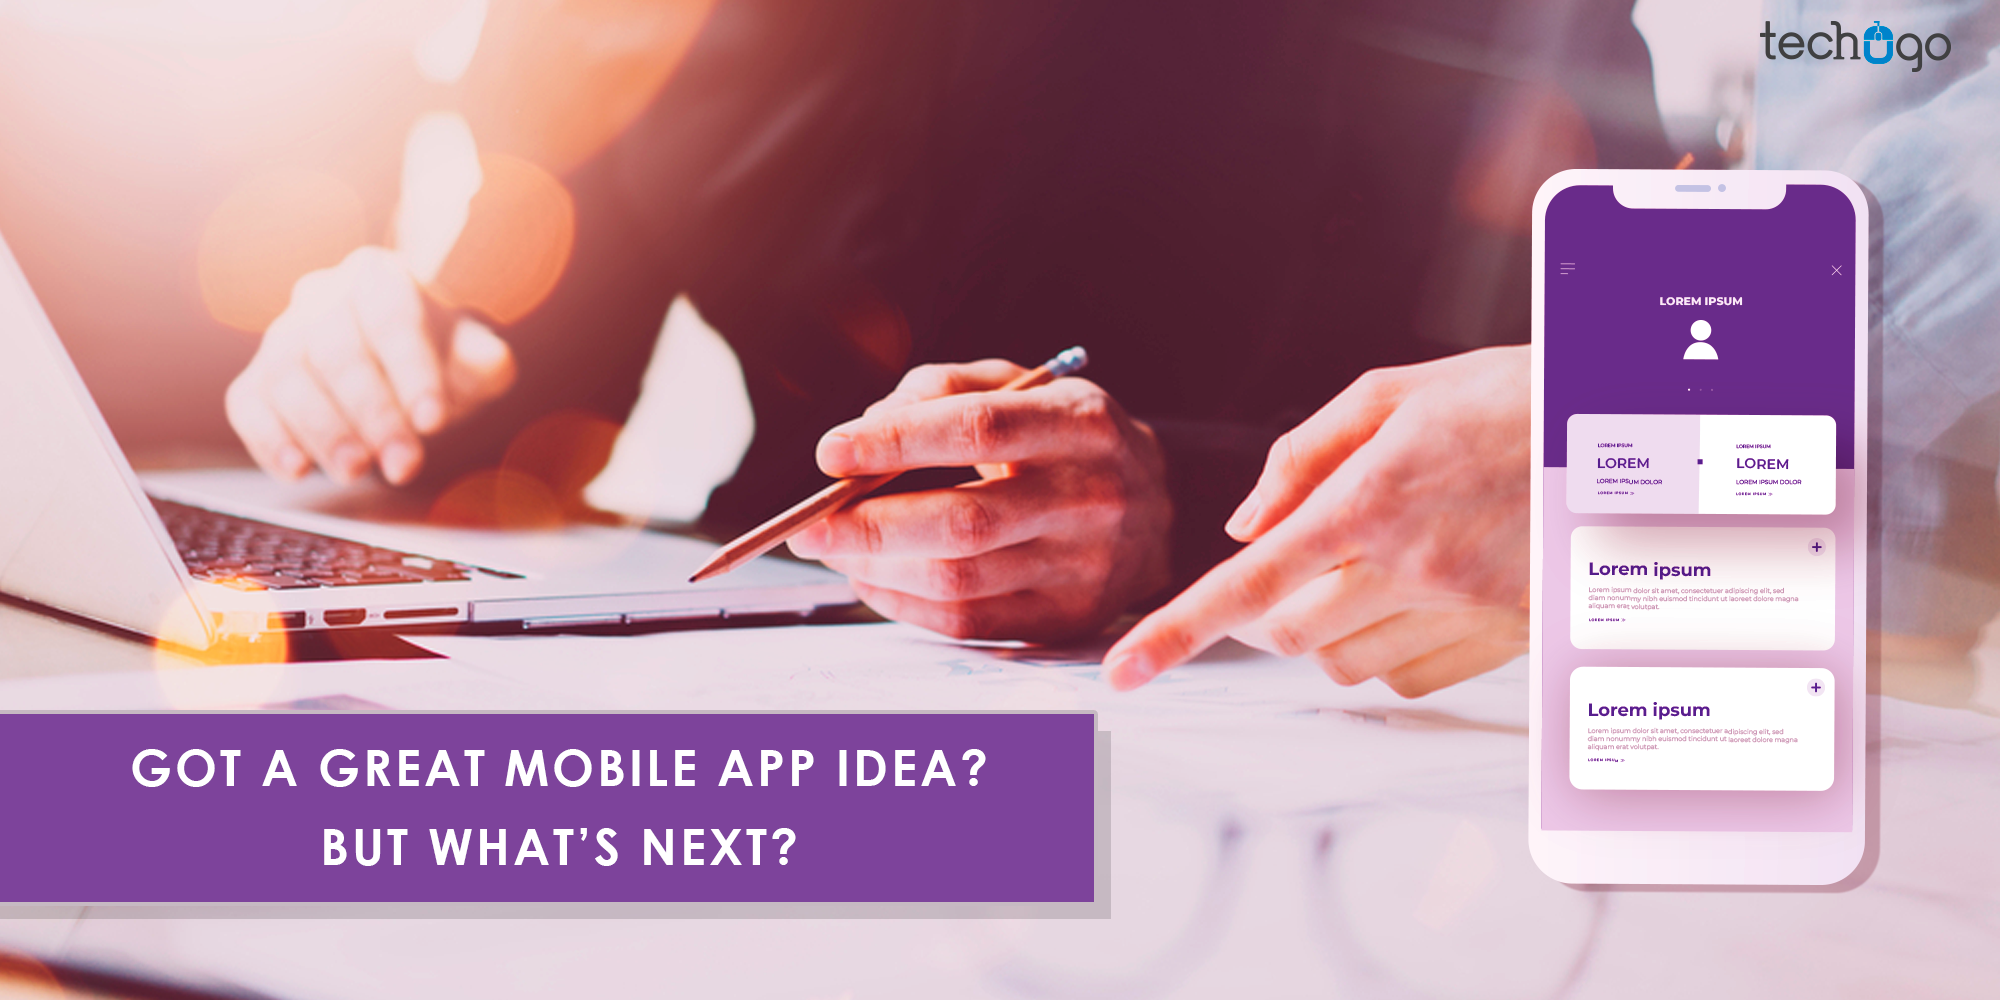 :  Got A Great Mobile App Idea? But What's Next?